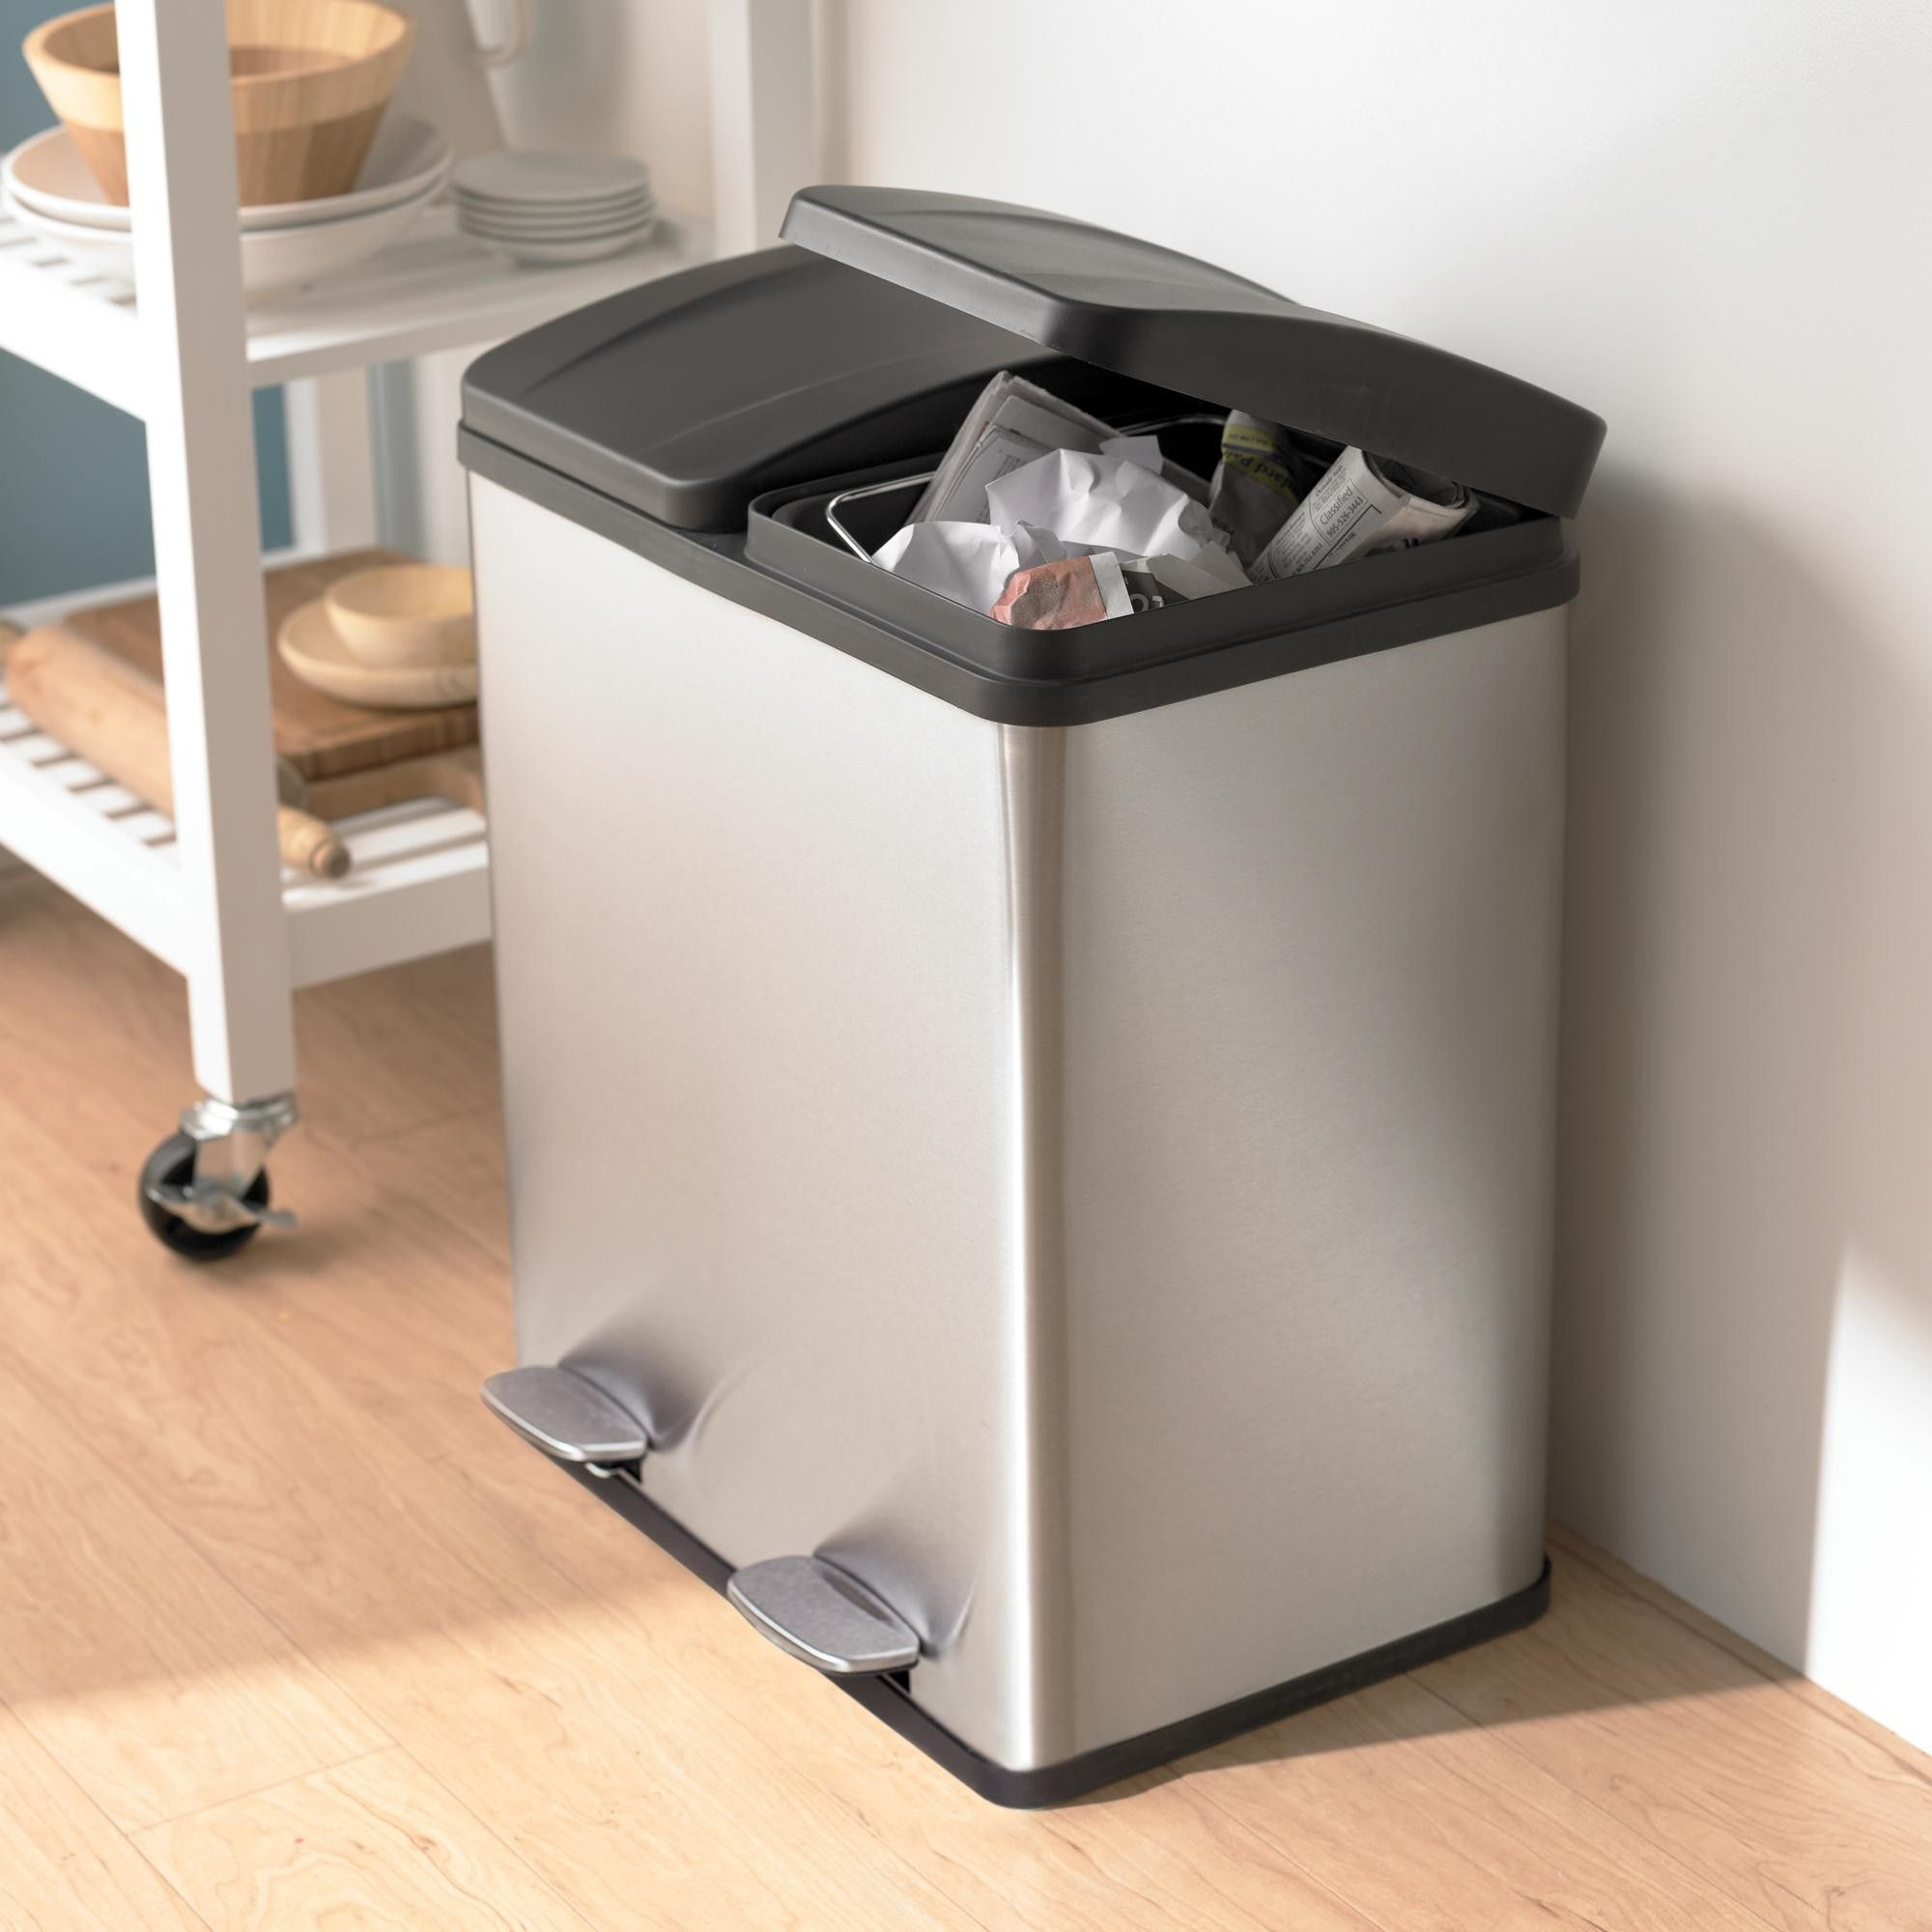 ksp duplex double step garbage recycling can in 2020 garbage recycling kitchen trash cans on kitchen organization recycling id=32779